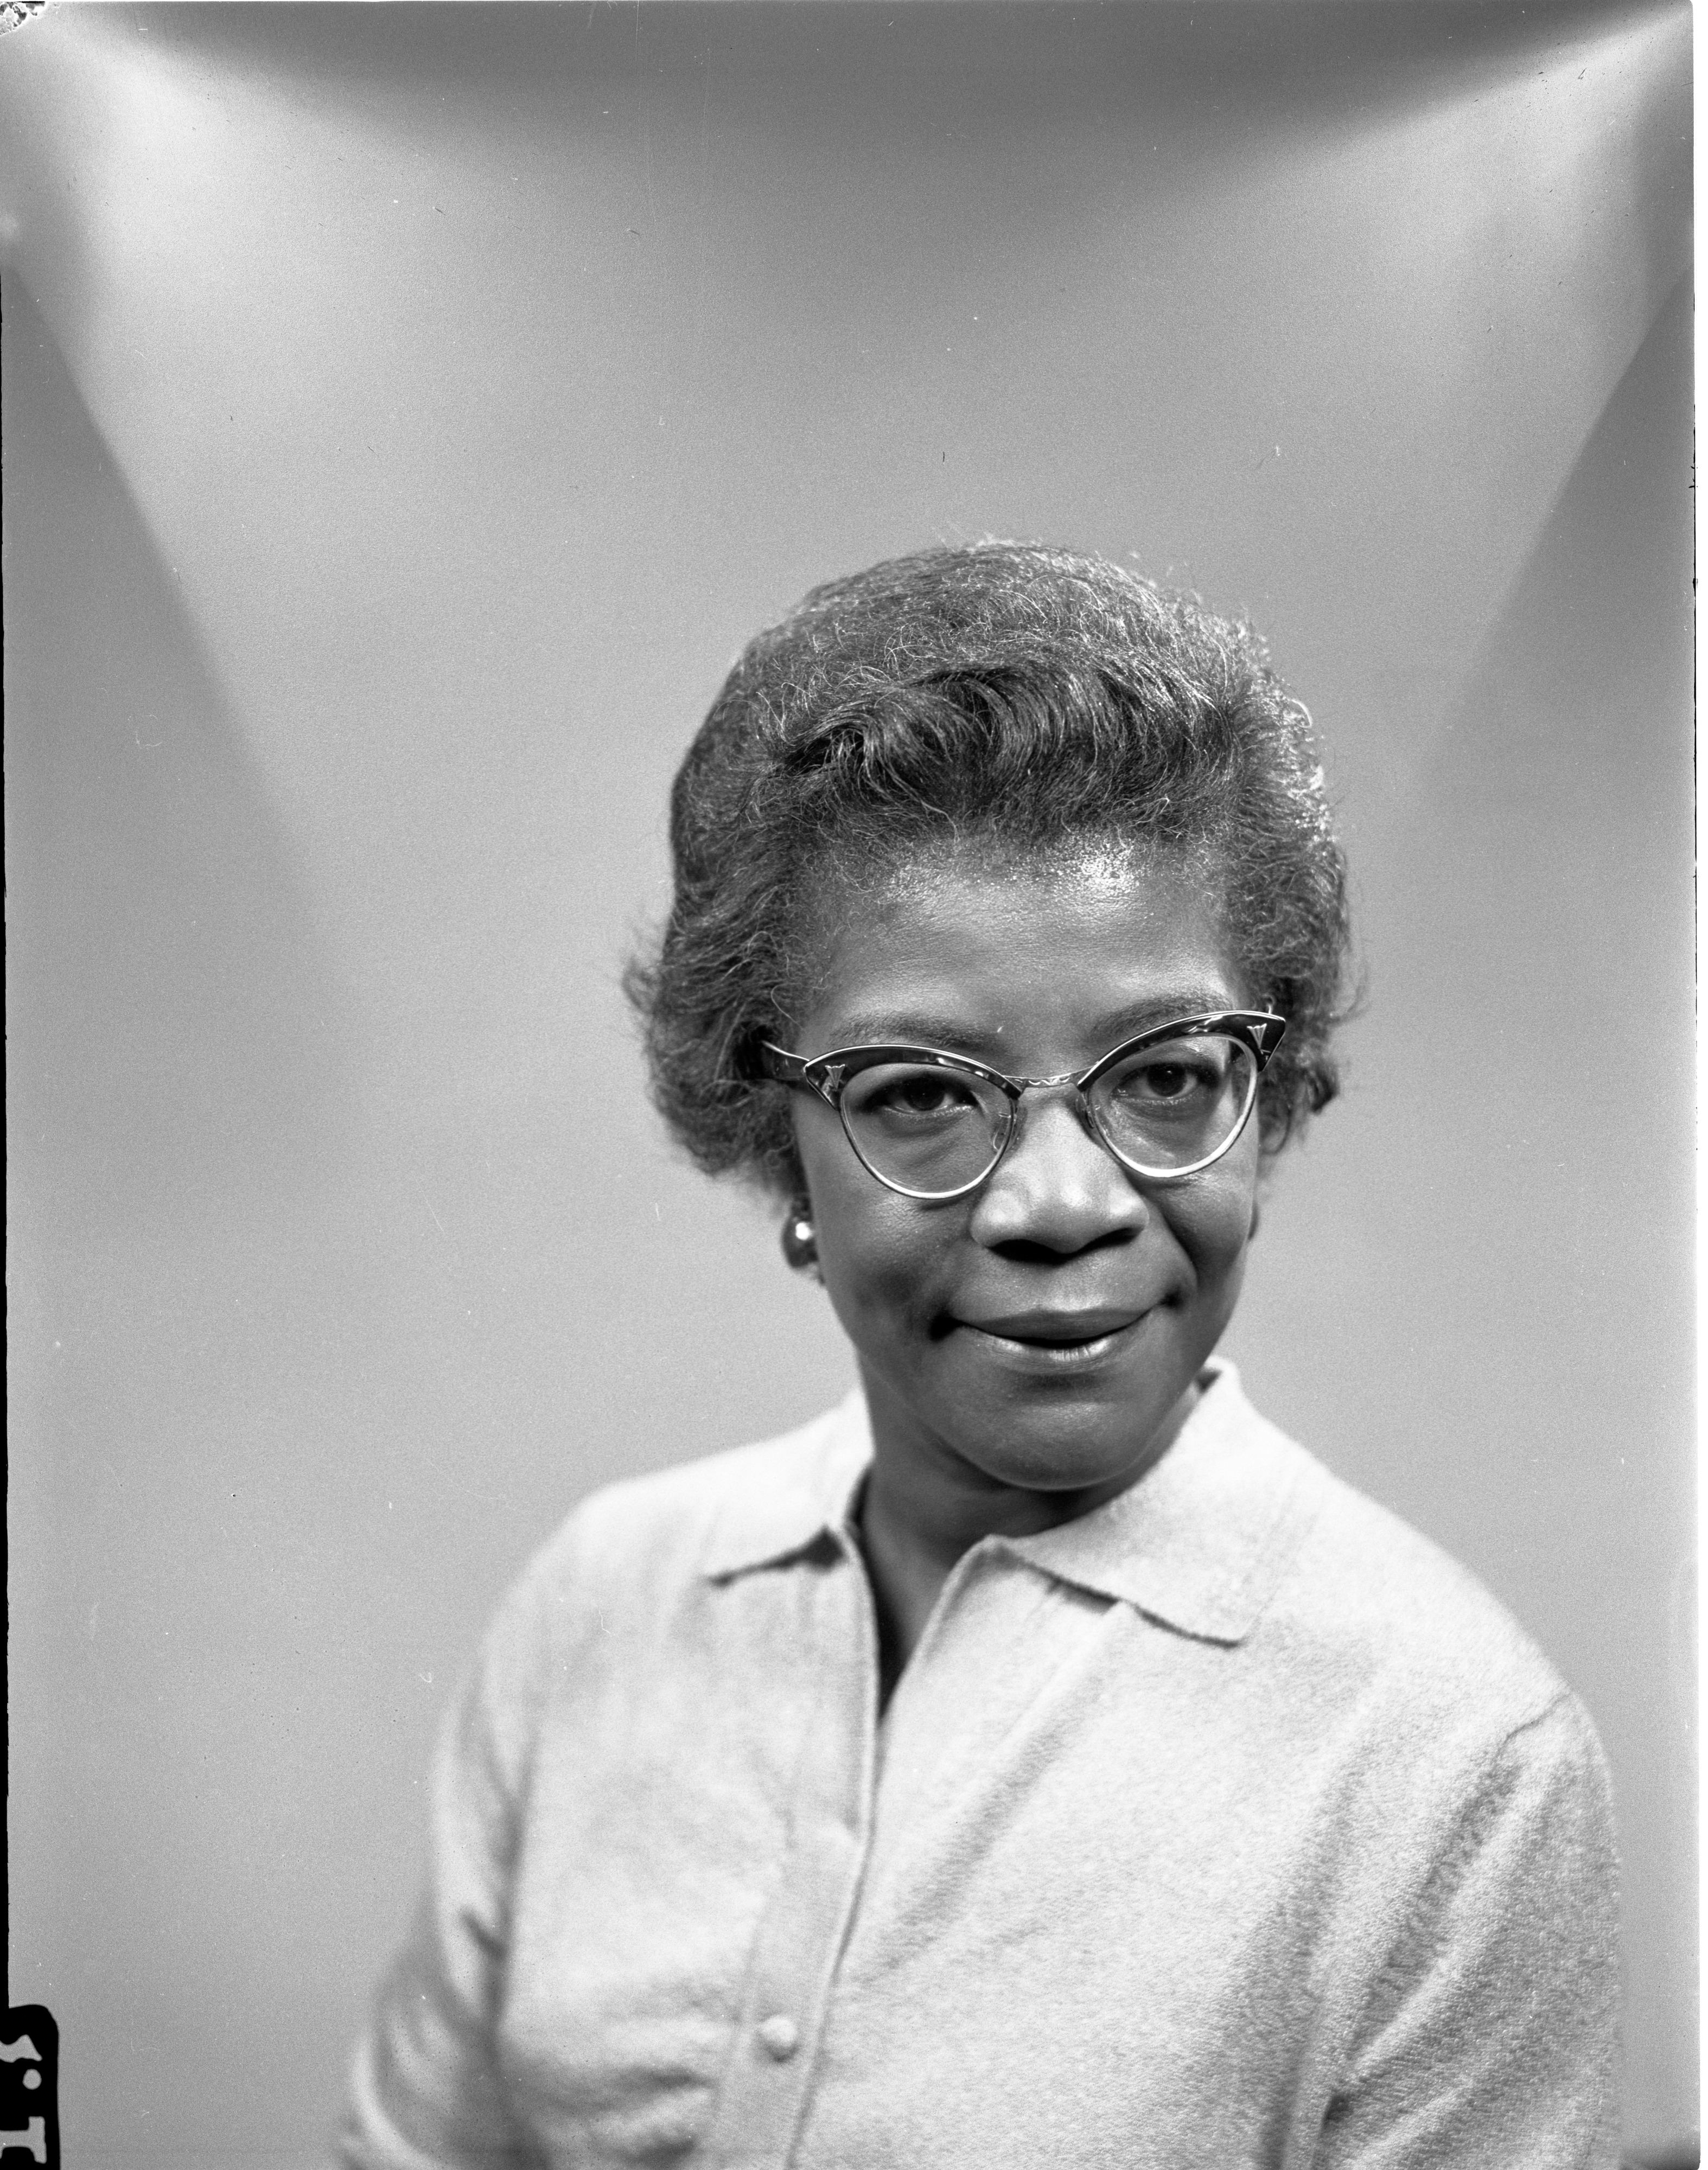 Miss Emma J. Pratt - New Program Director At The Ann Arbor Community Center, September 1962 image